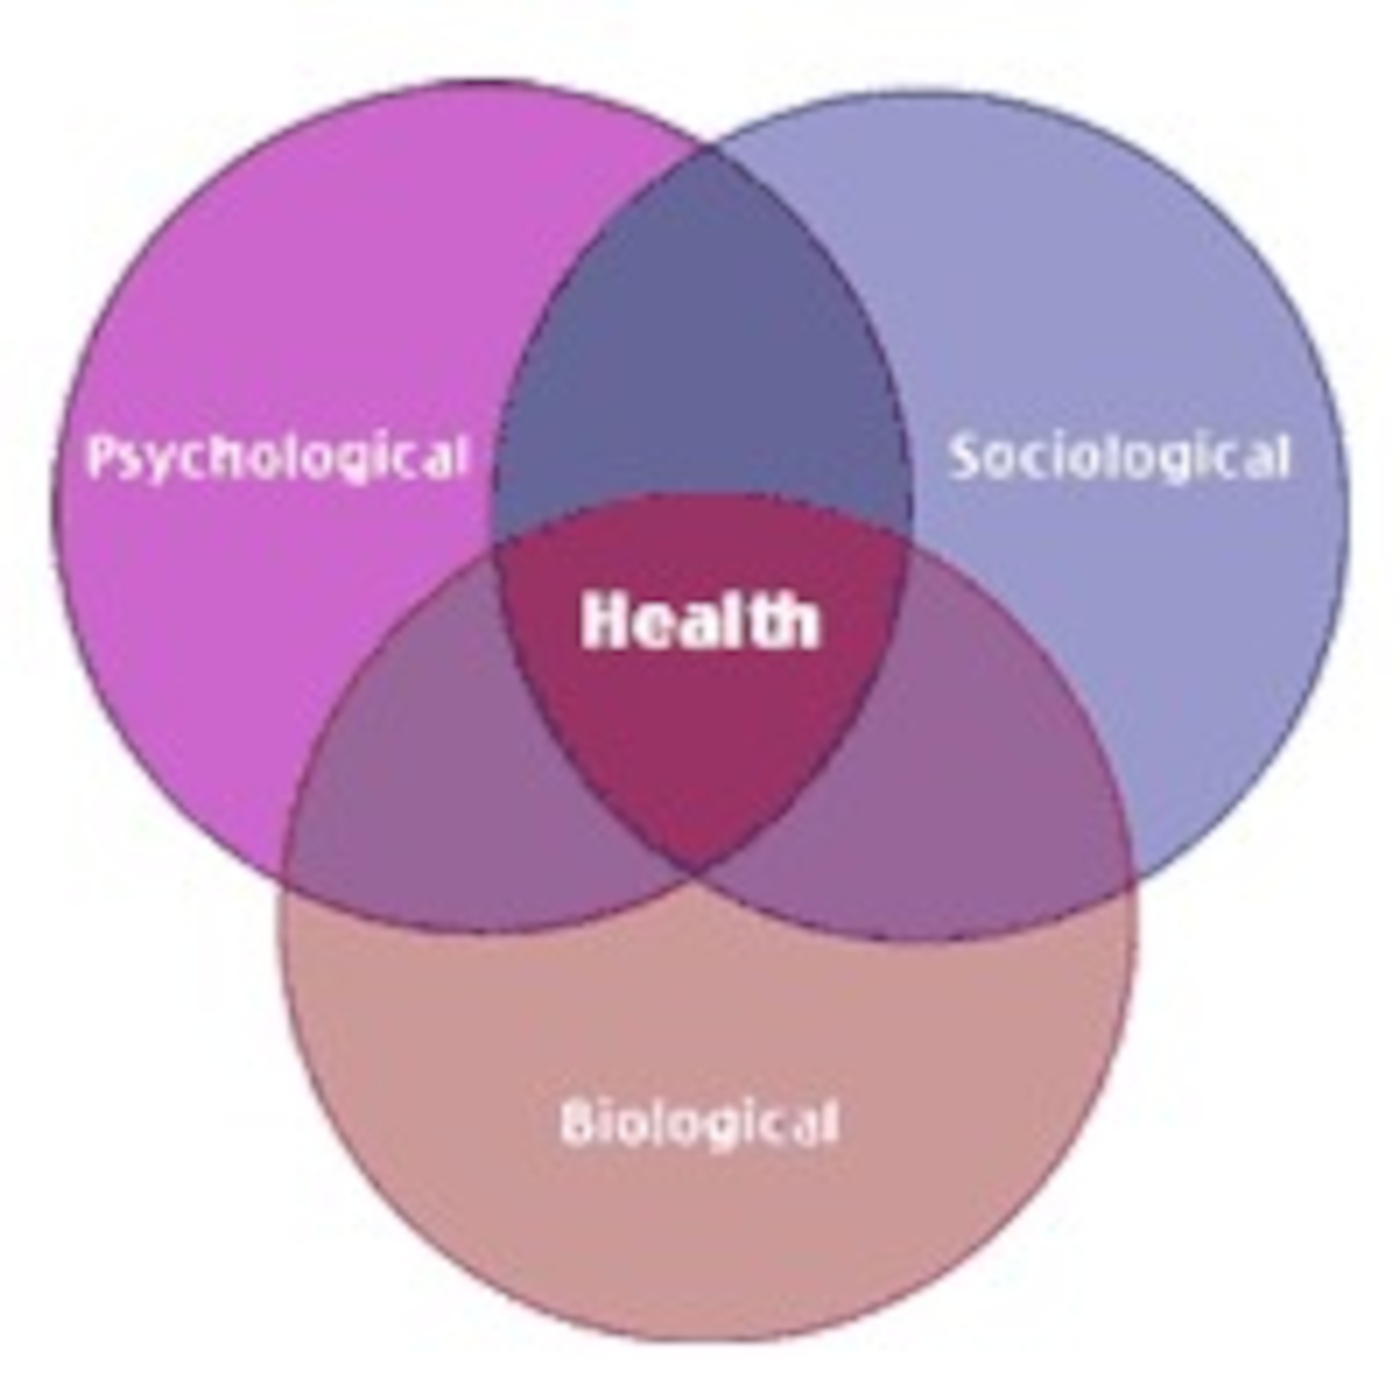 multifactorial model of health psychology Constructs and models in health psychology: the case of personality and illness reporting in diabetes mellitus.